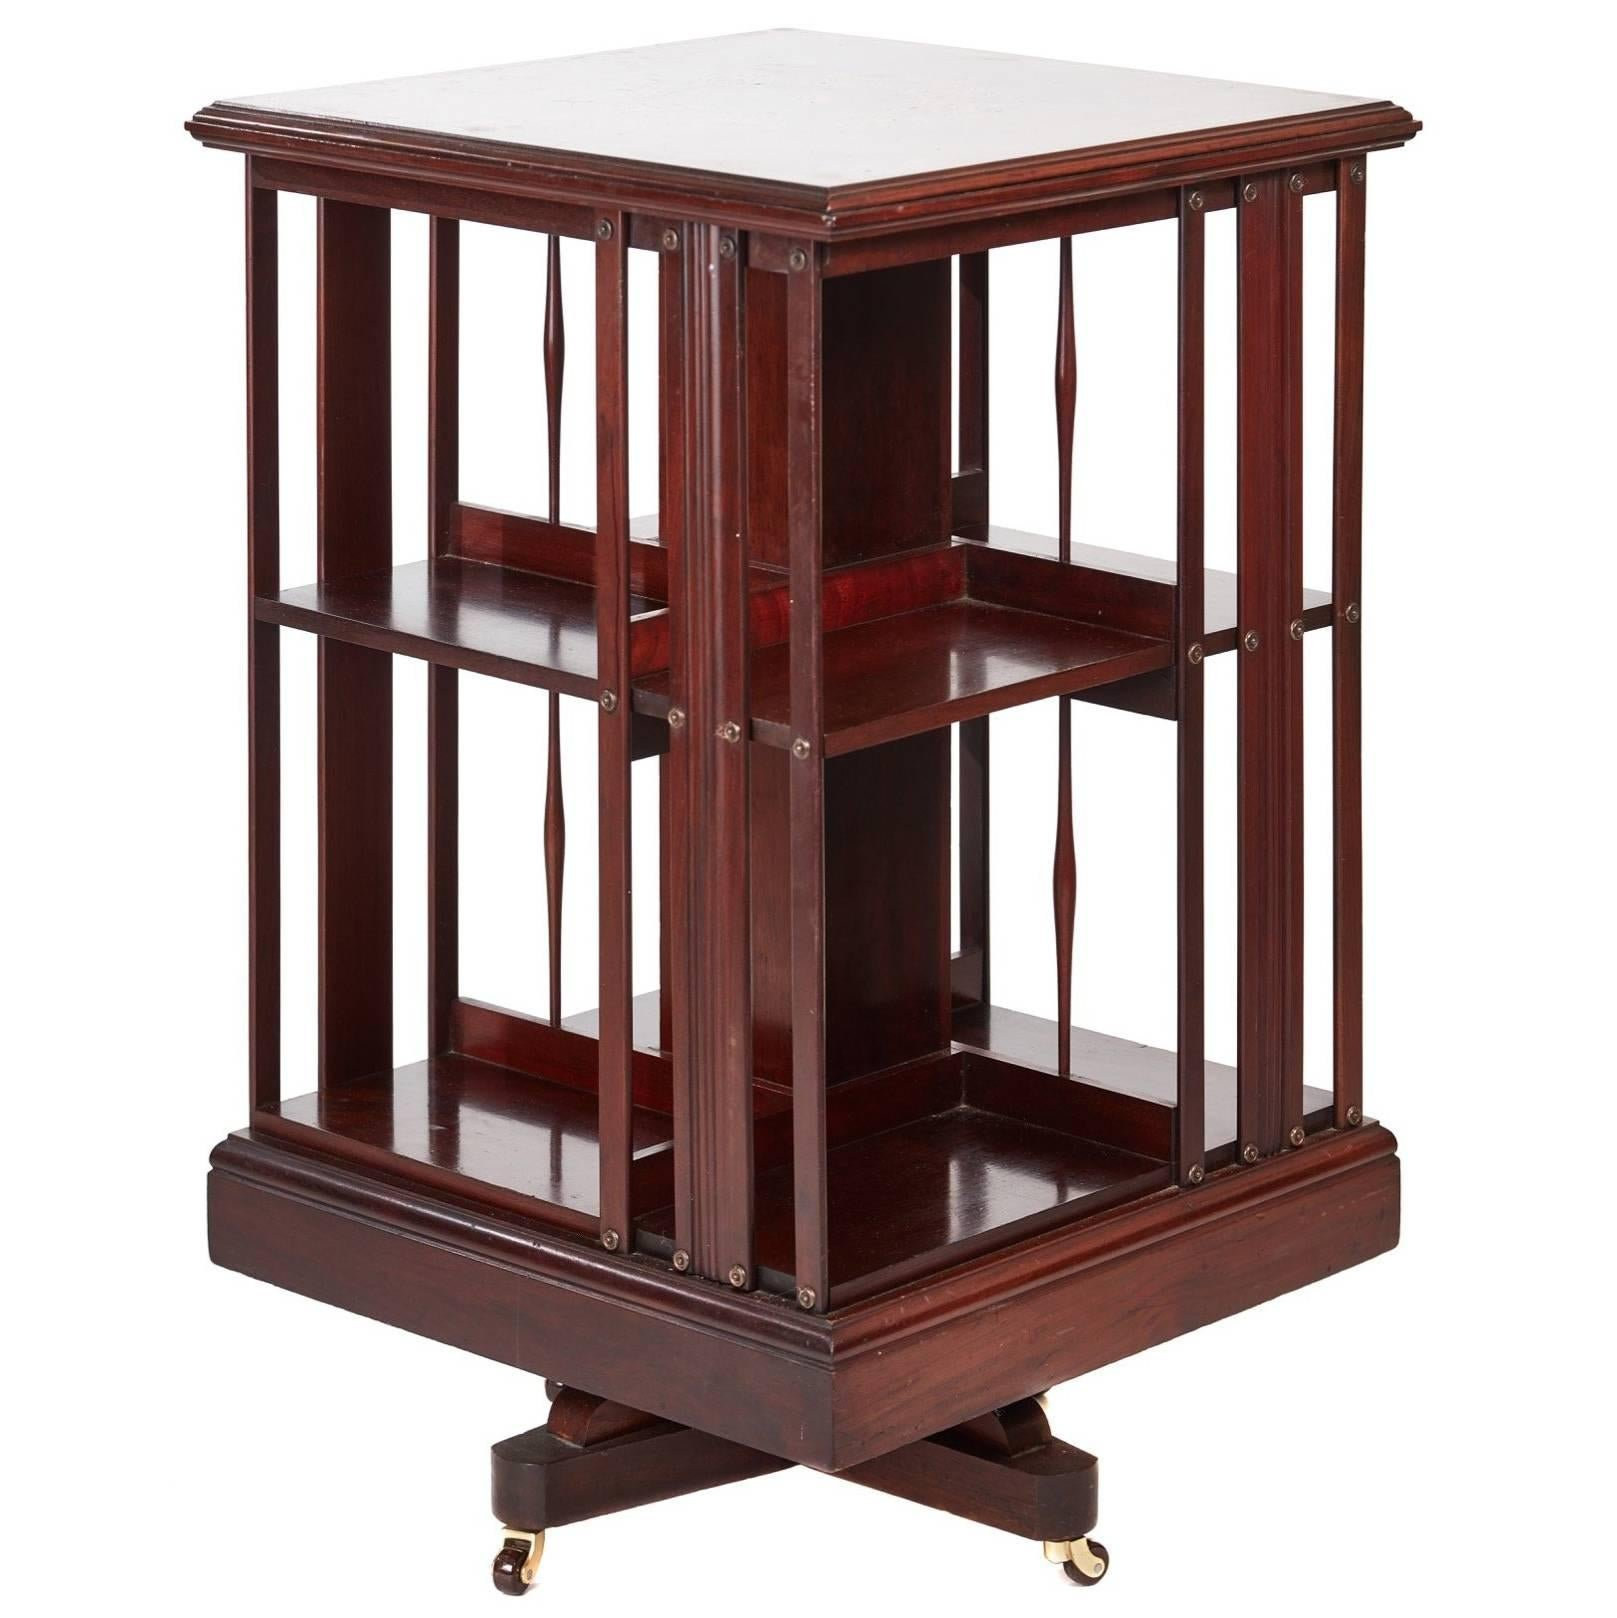 Vintage Cylindrical Shape Wooden Revolving Bookcase Table Stand Inlaid Rosette